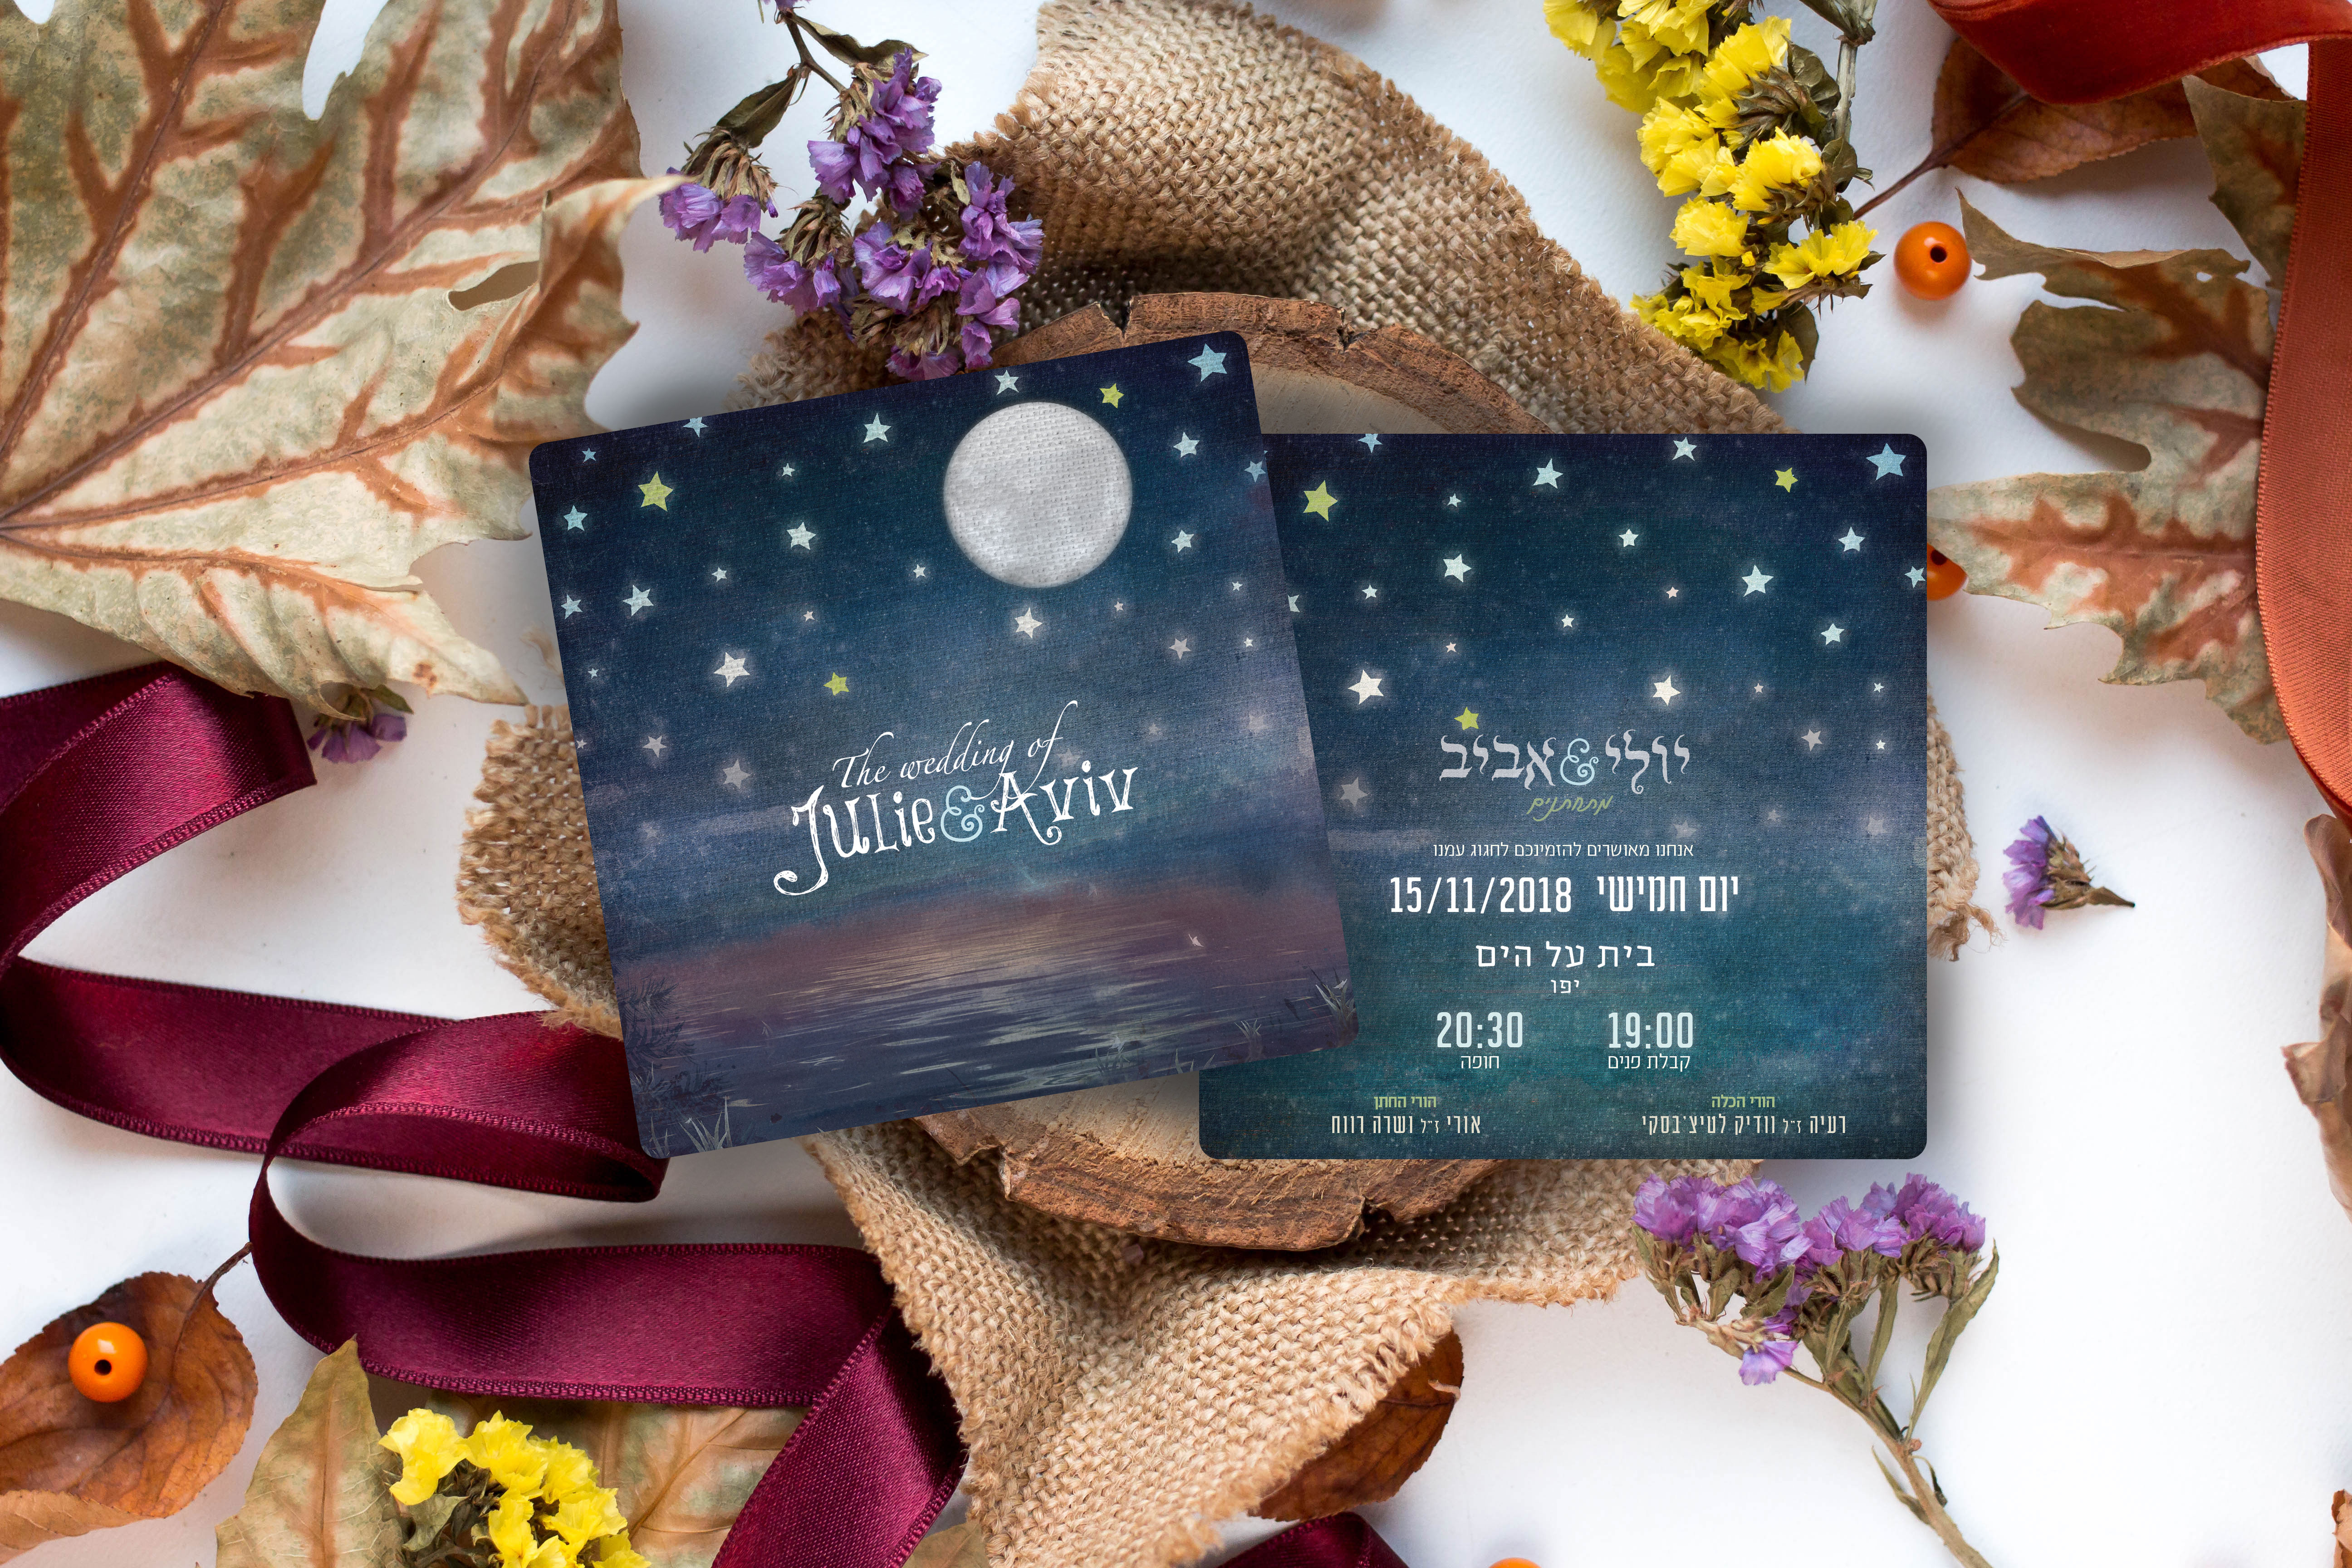 nataie_klug_wedding_invitation_night_fai